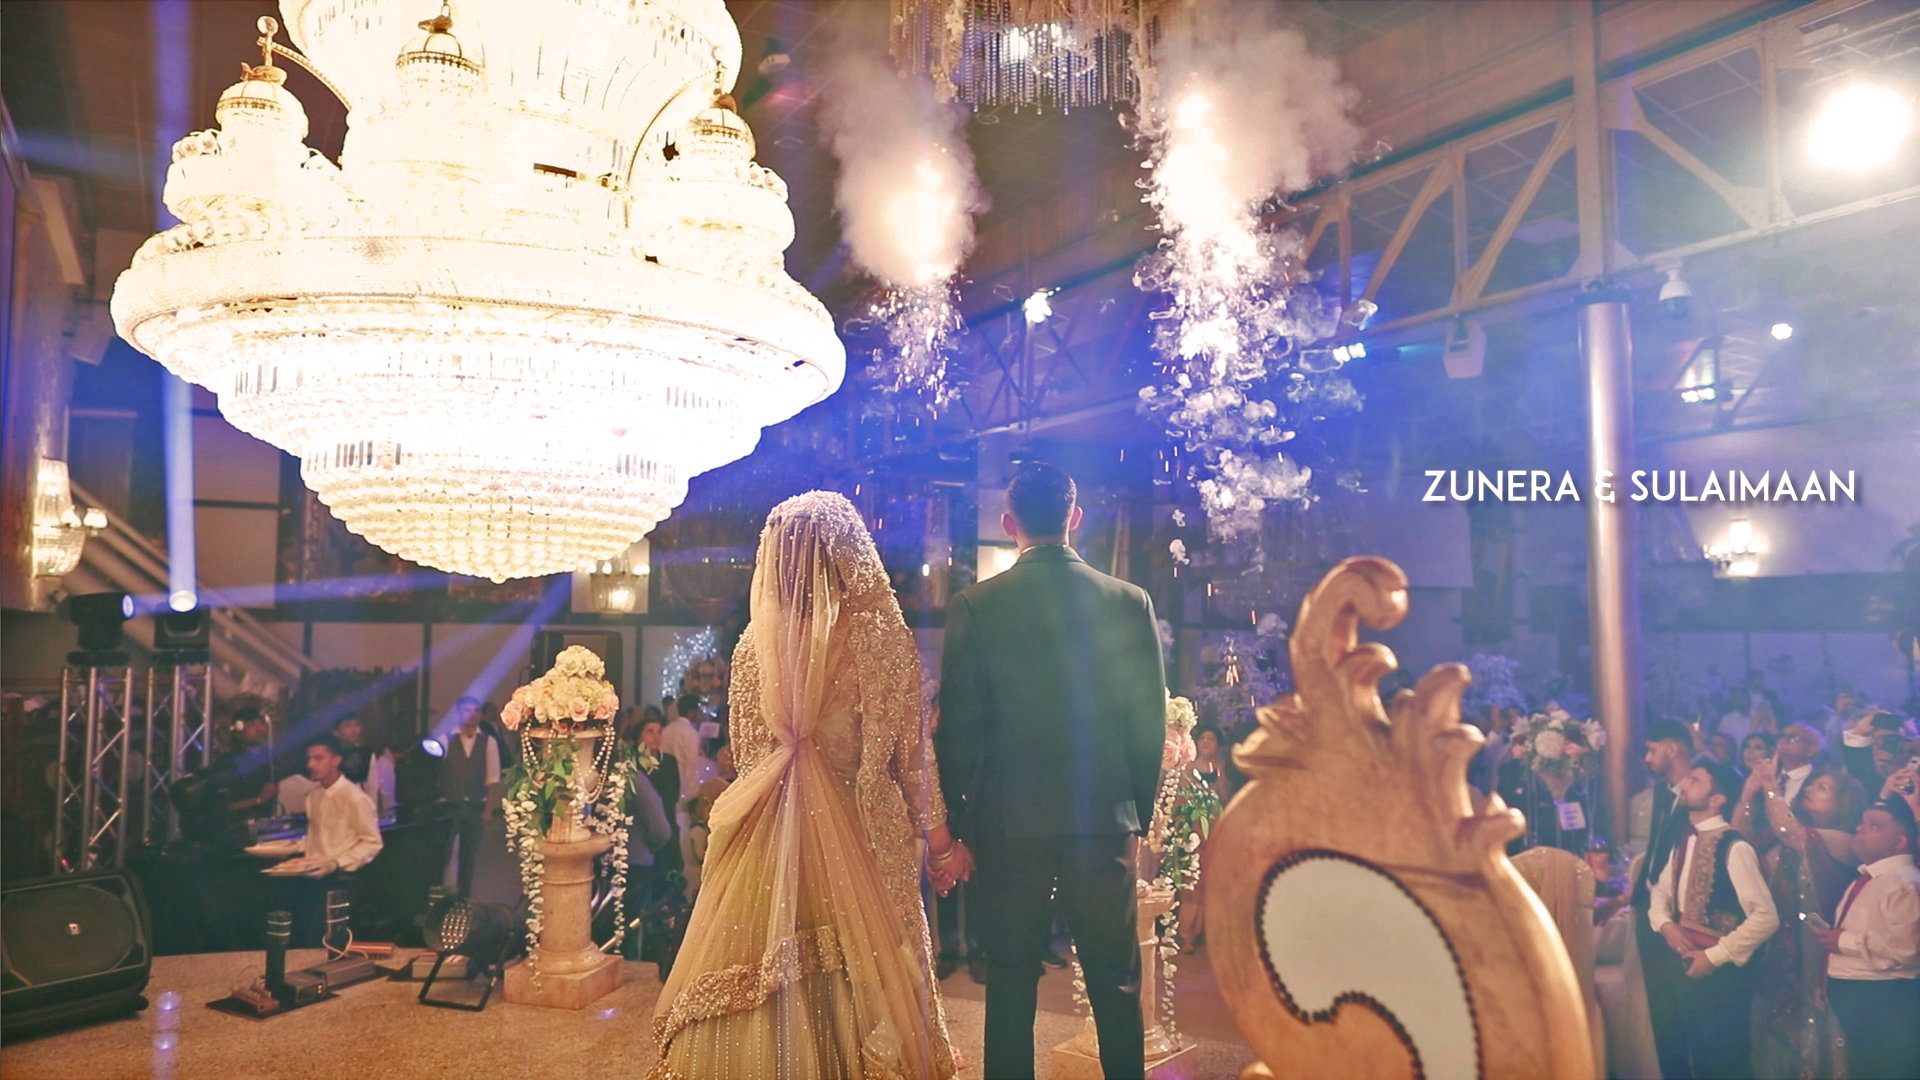 Zunera + Sulaimaan | Bolton, United Kingdom | Excellency